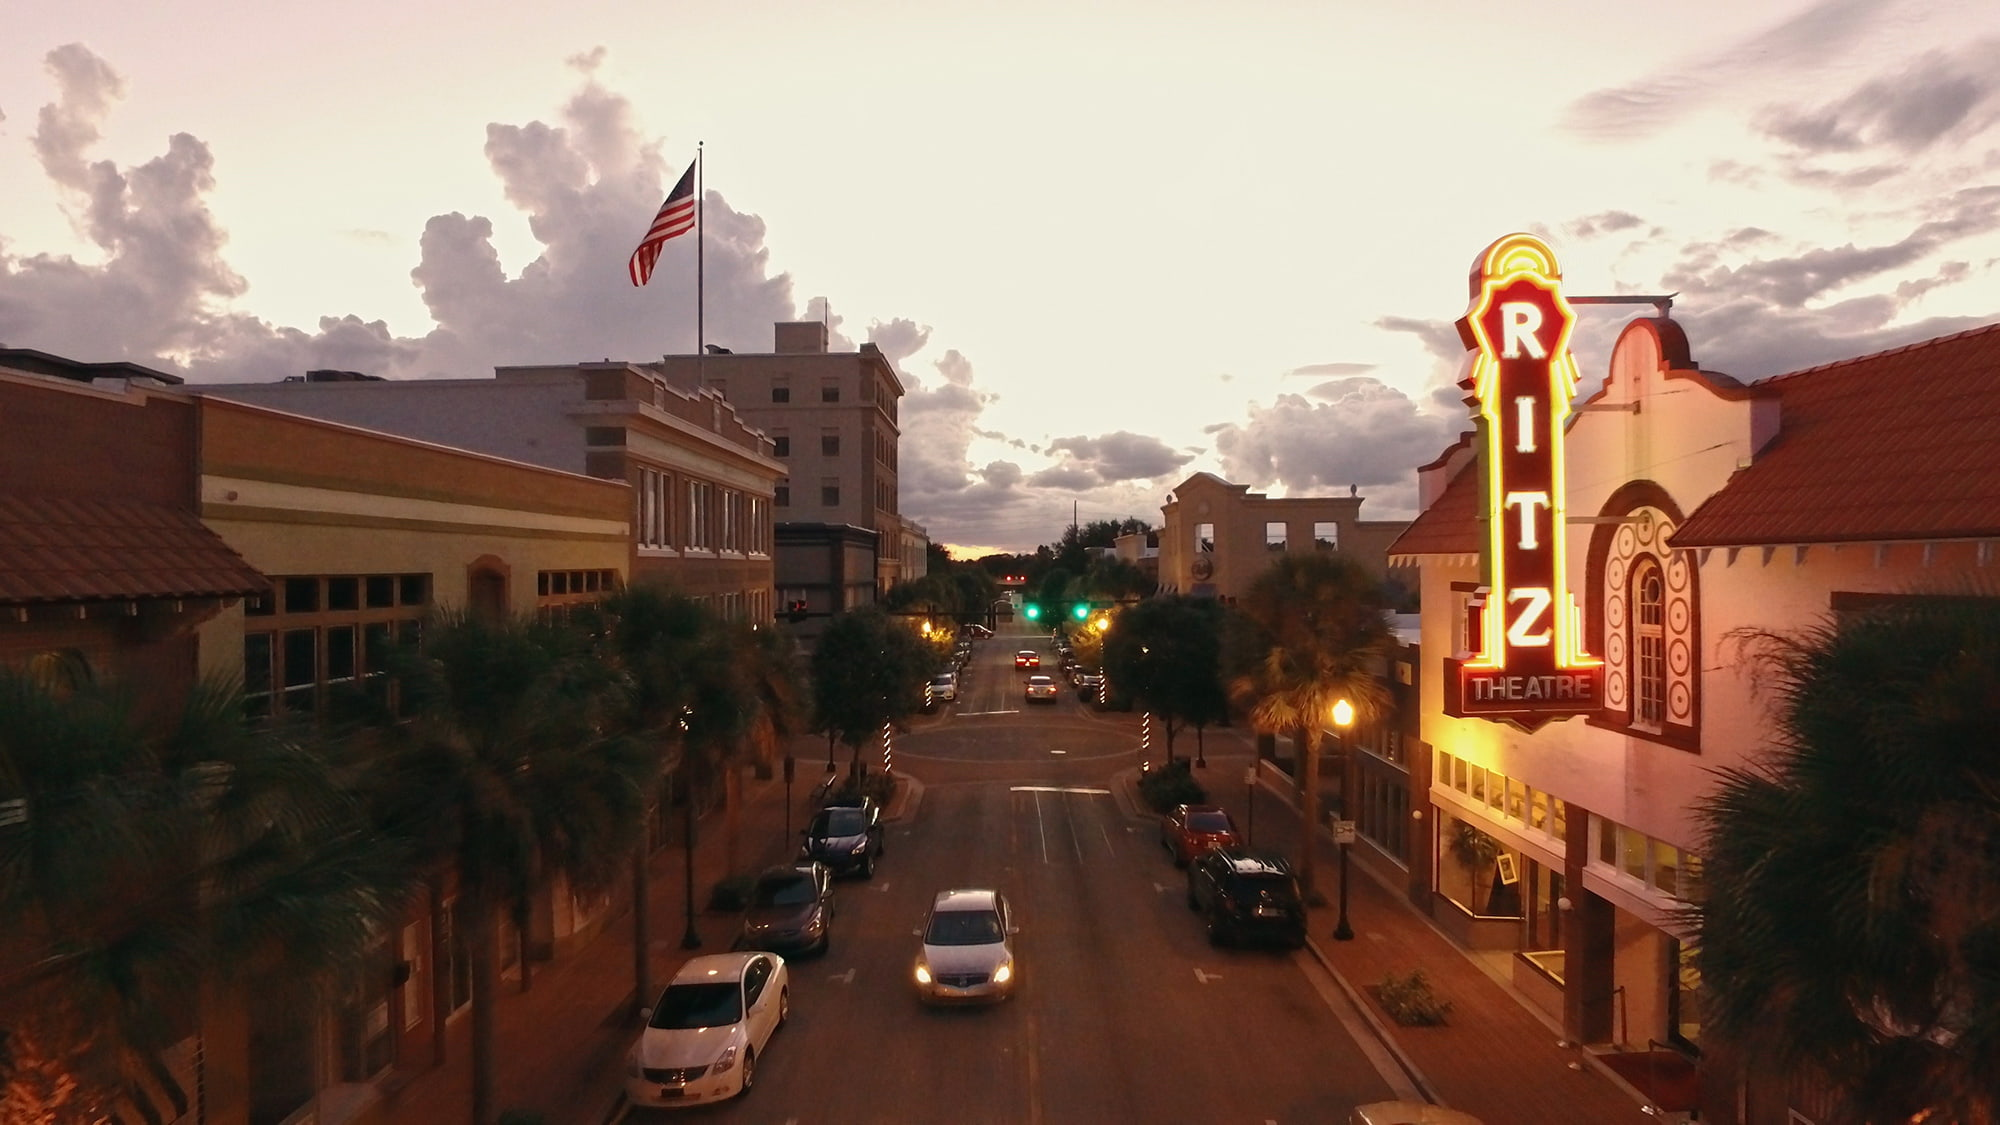 Aerial view of Central Avenue and lighted Ritz Theatre sign in Winter Haven, FL